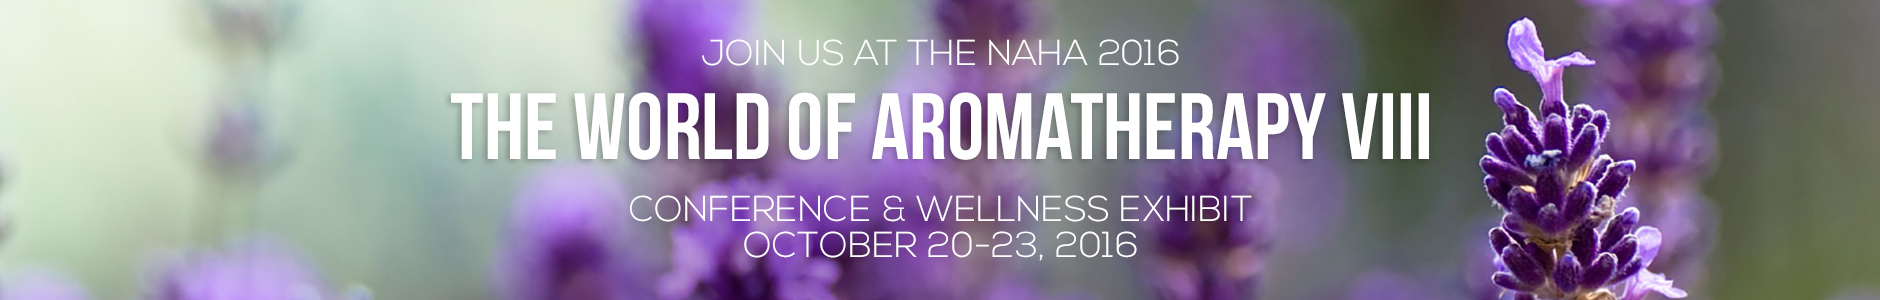 Join us for the NAHA 2016 Conference in October